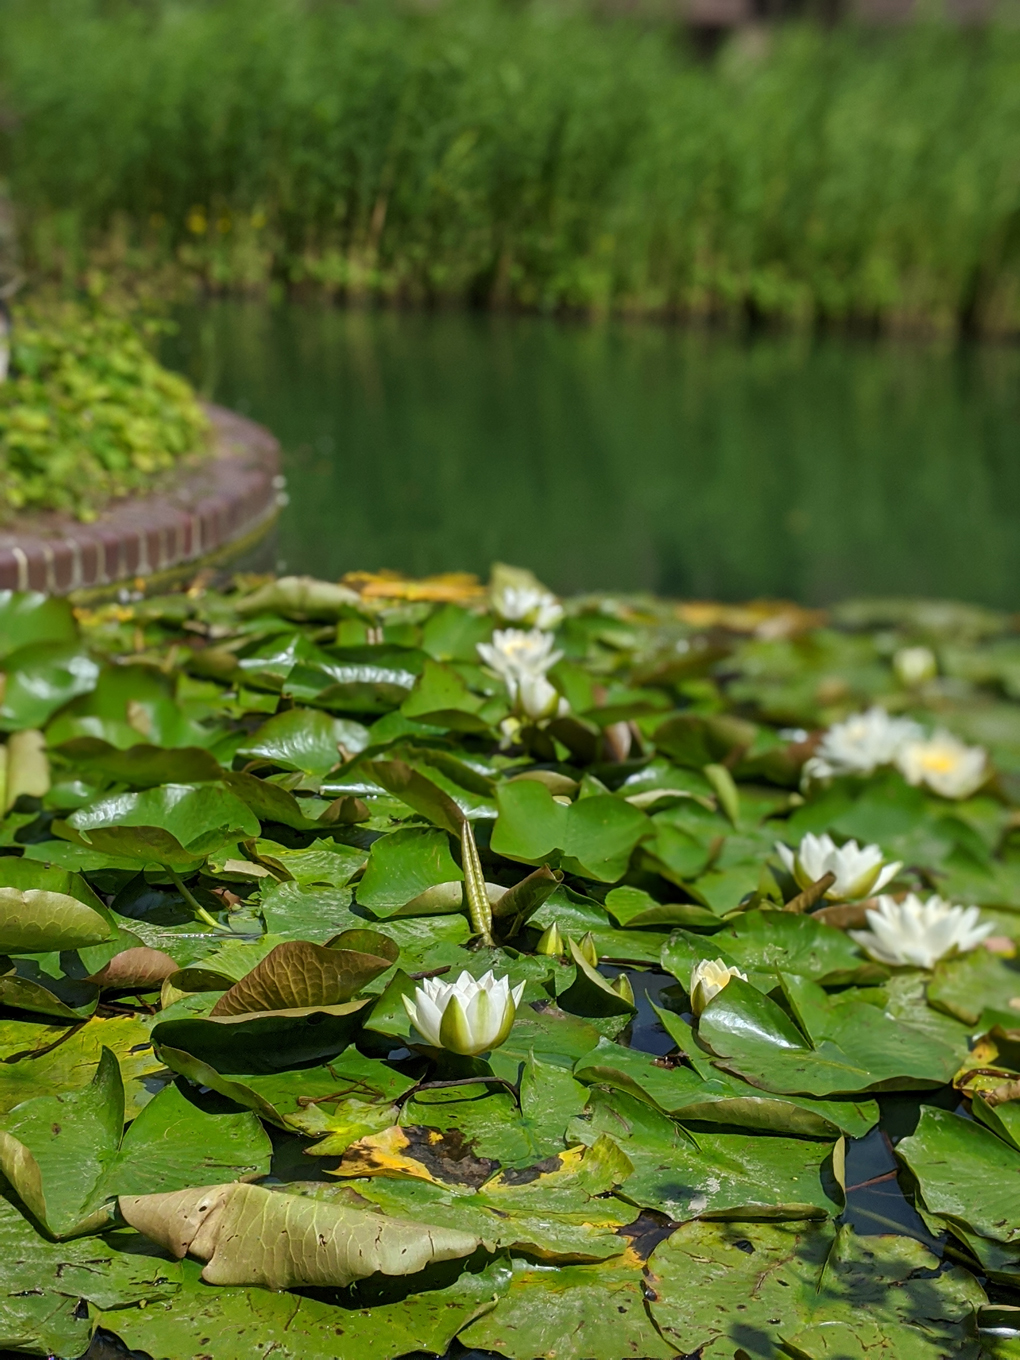 Water lilies gathered on water